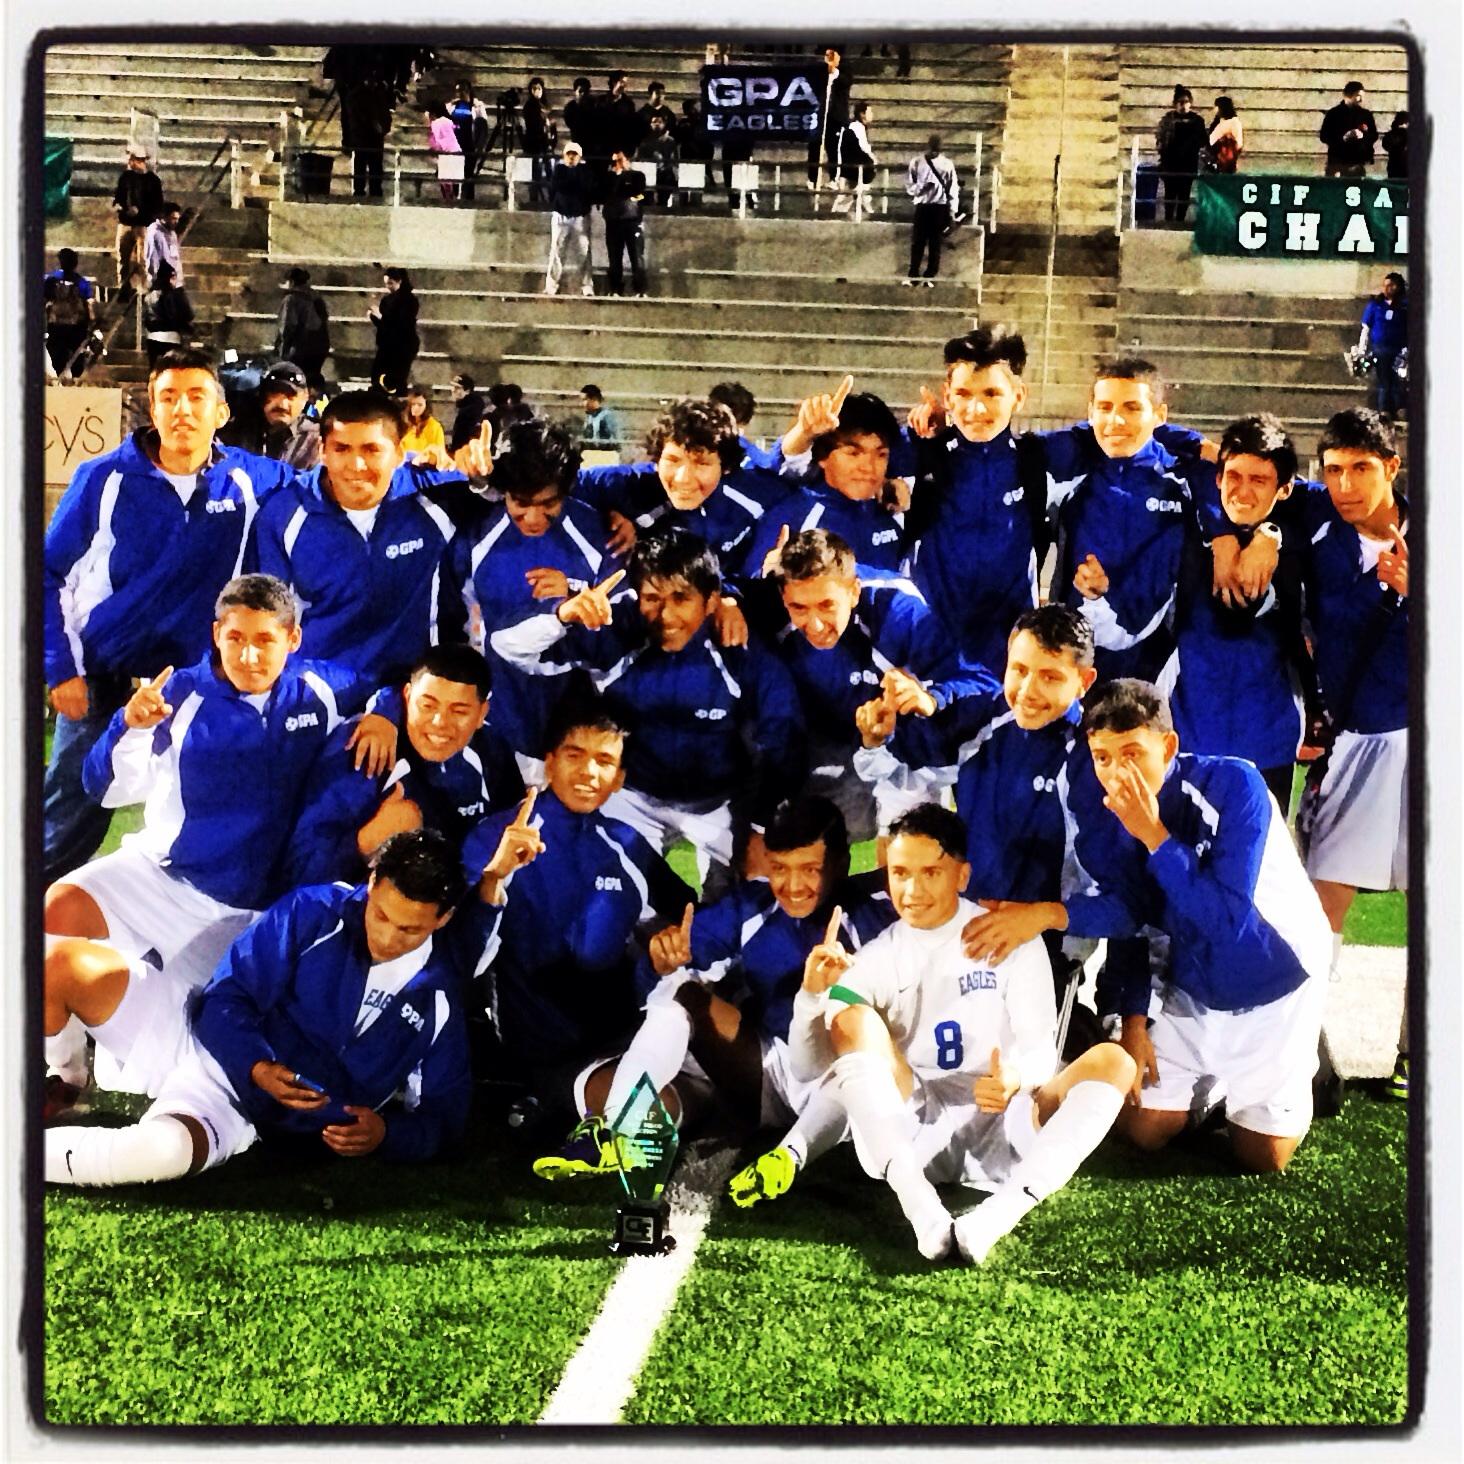 GPA Soccer vs. Valley Christian Monday 4:00pm at Gompers Prep Field